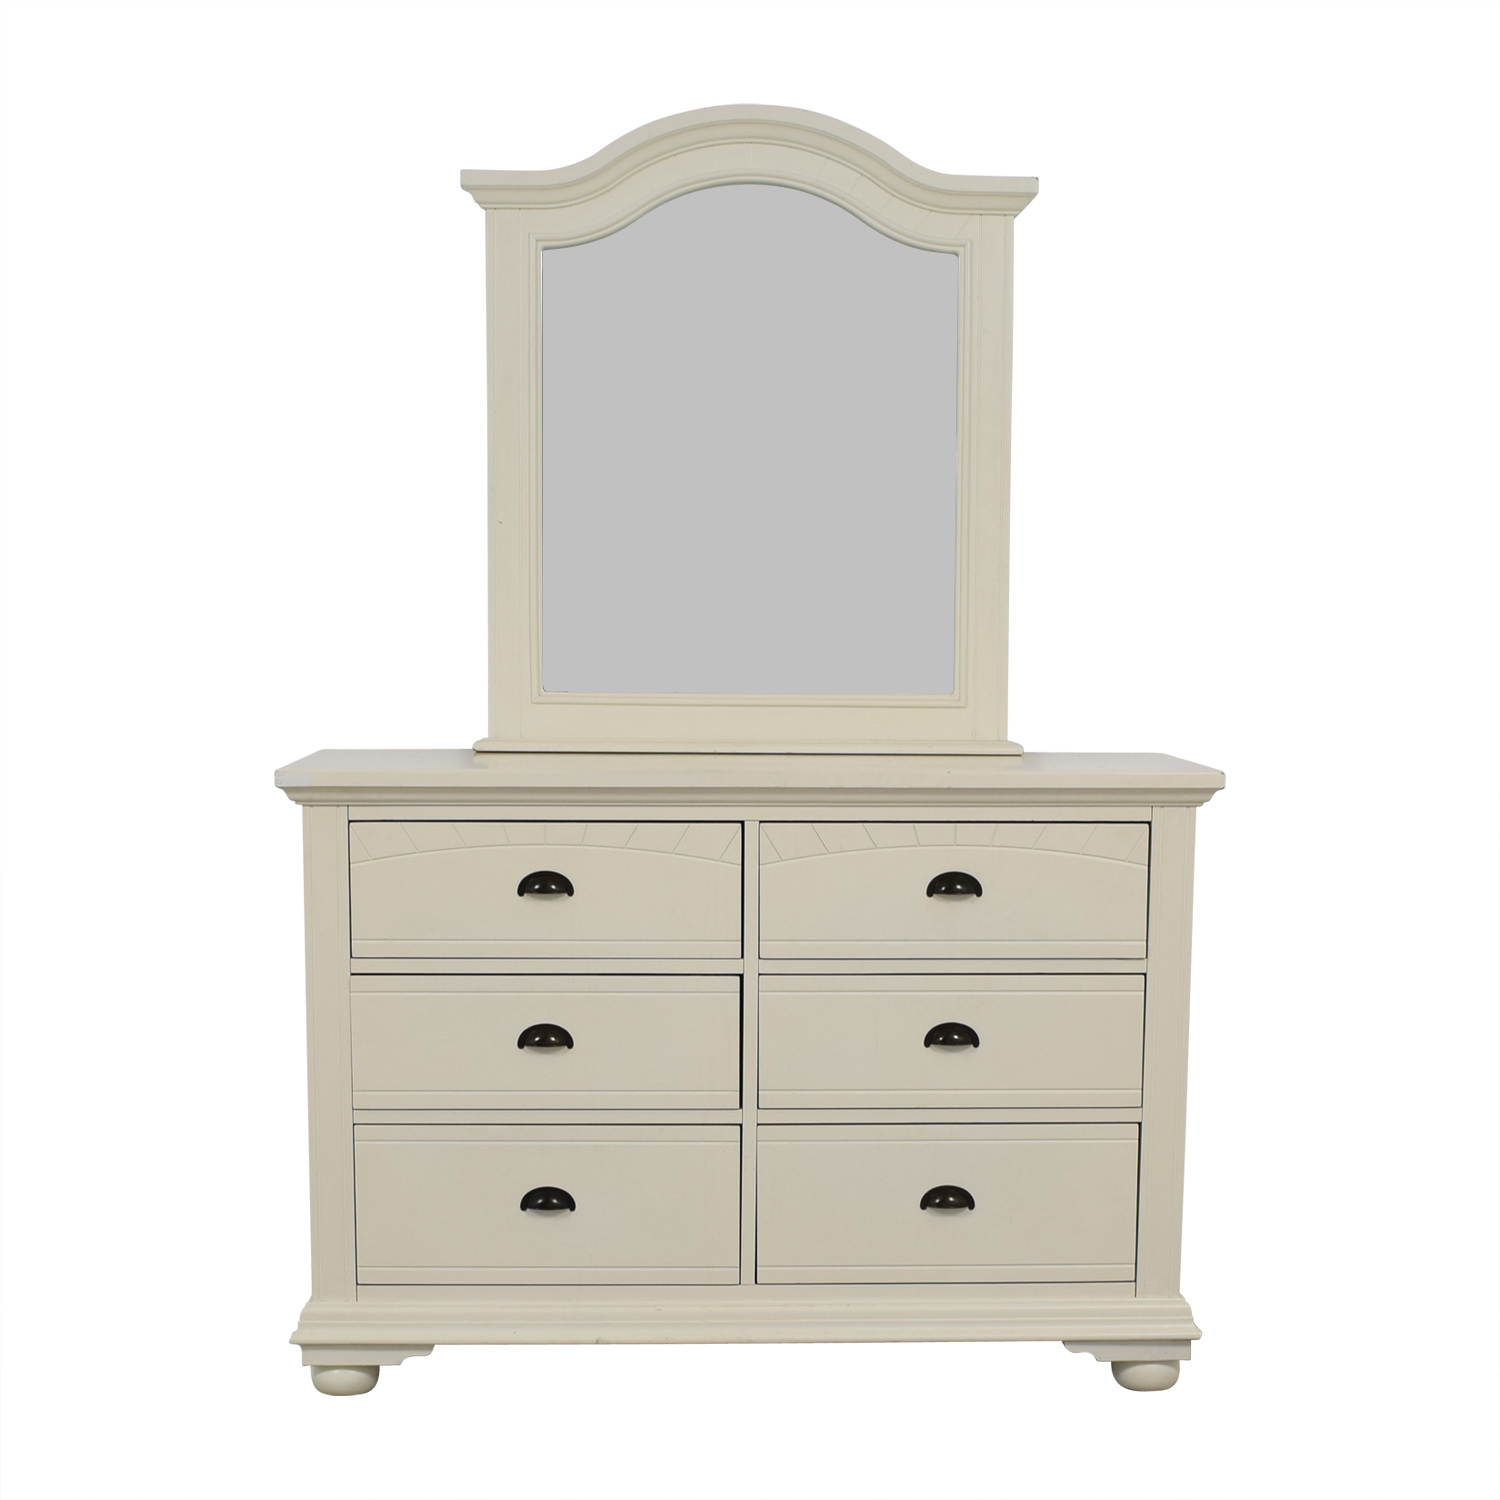 buy Bob's White Six-Drawer Dresser Bob's Discount Furniture Dressers